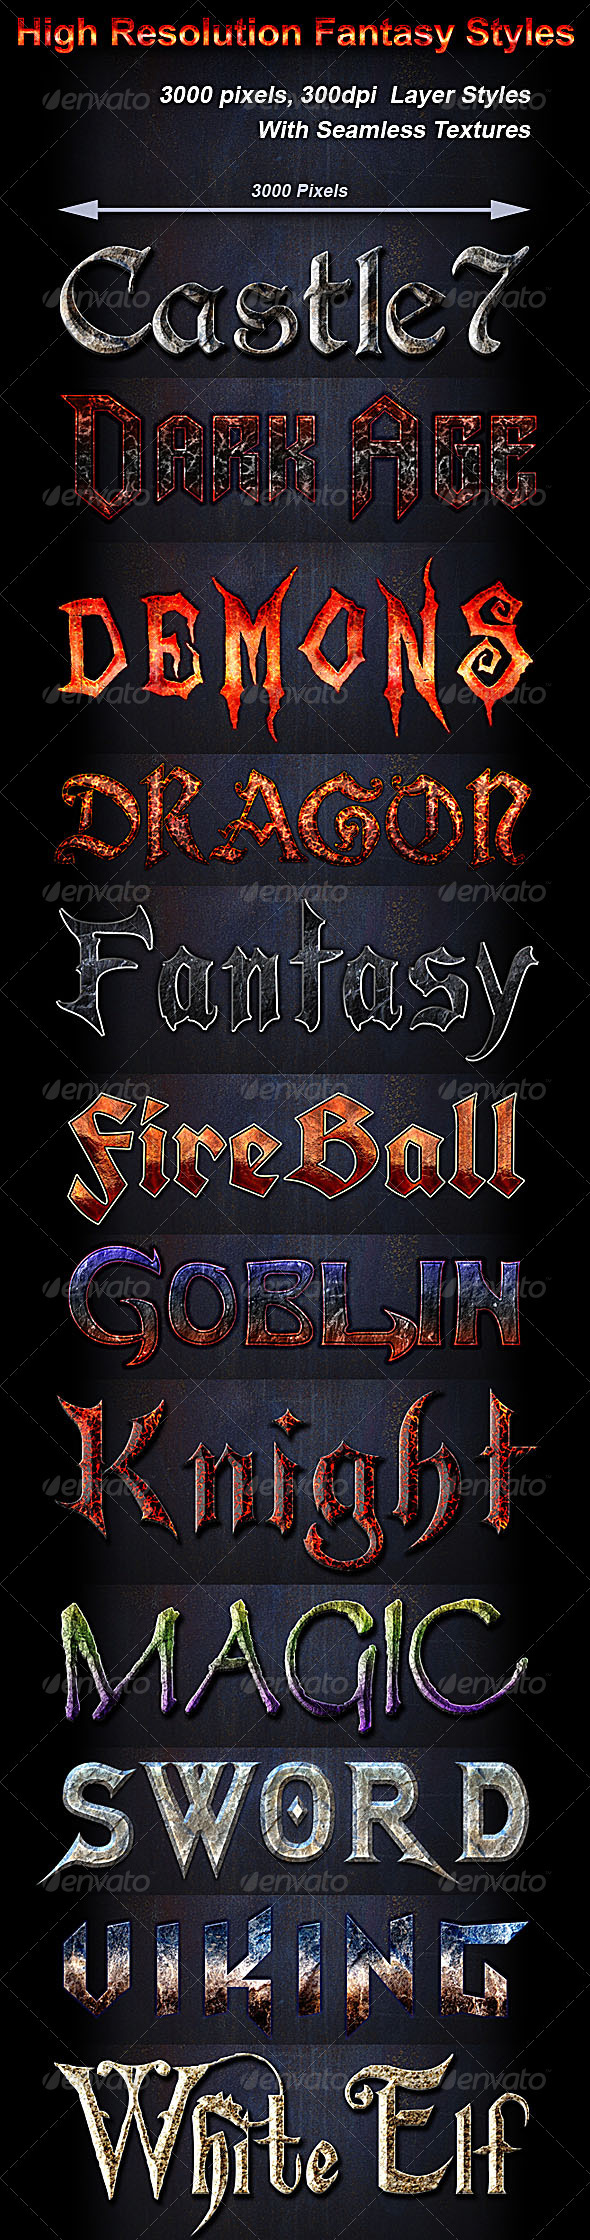 GraphicRiver High Resolution Fantasy Styles 3580328